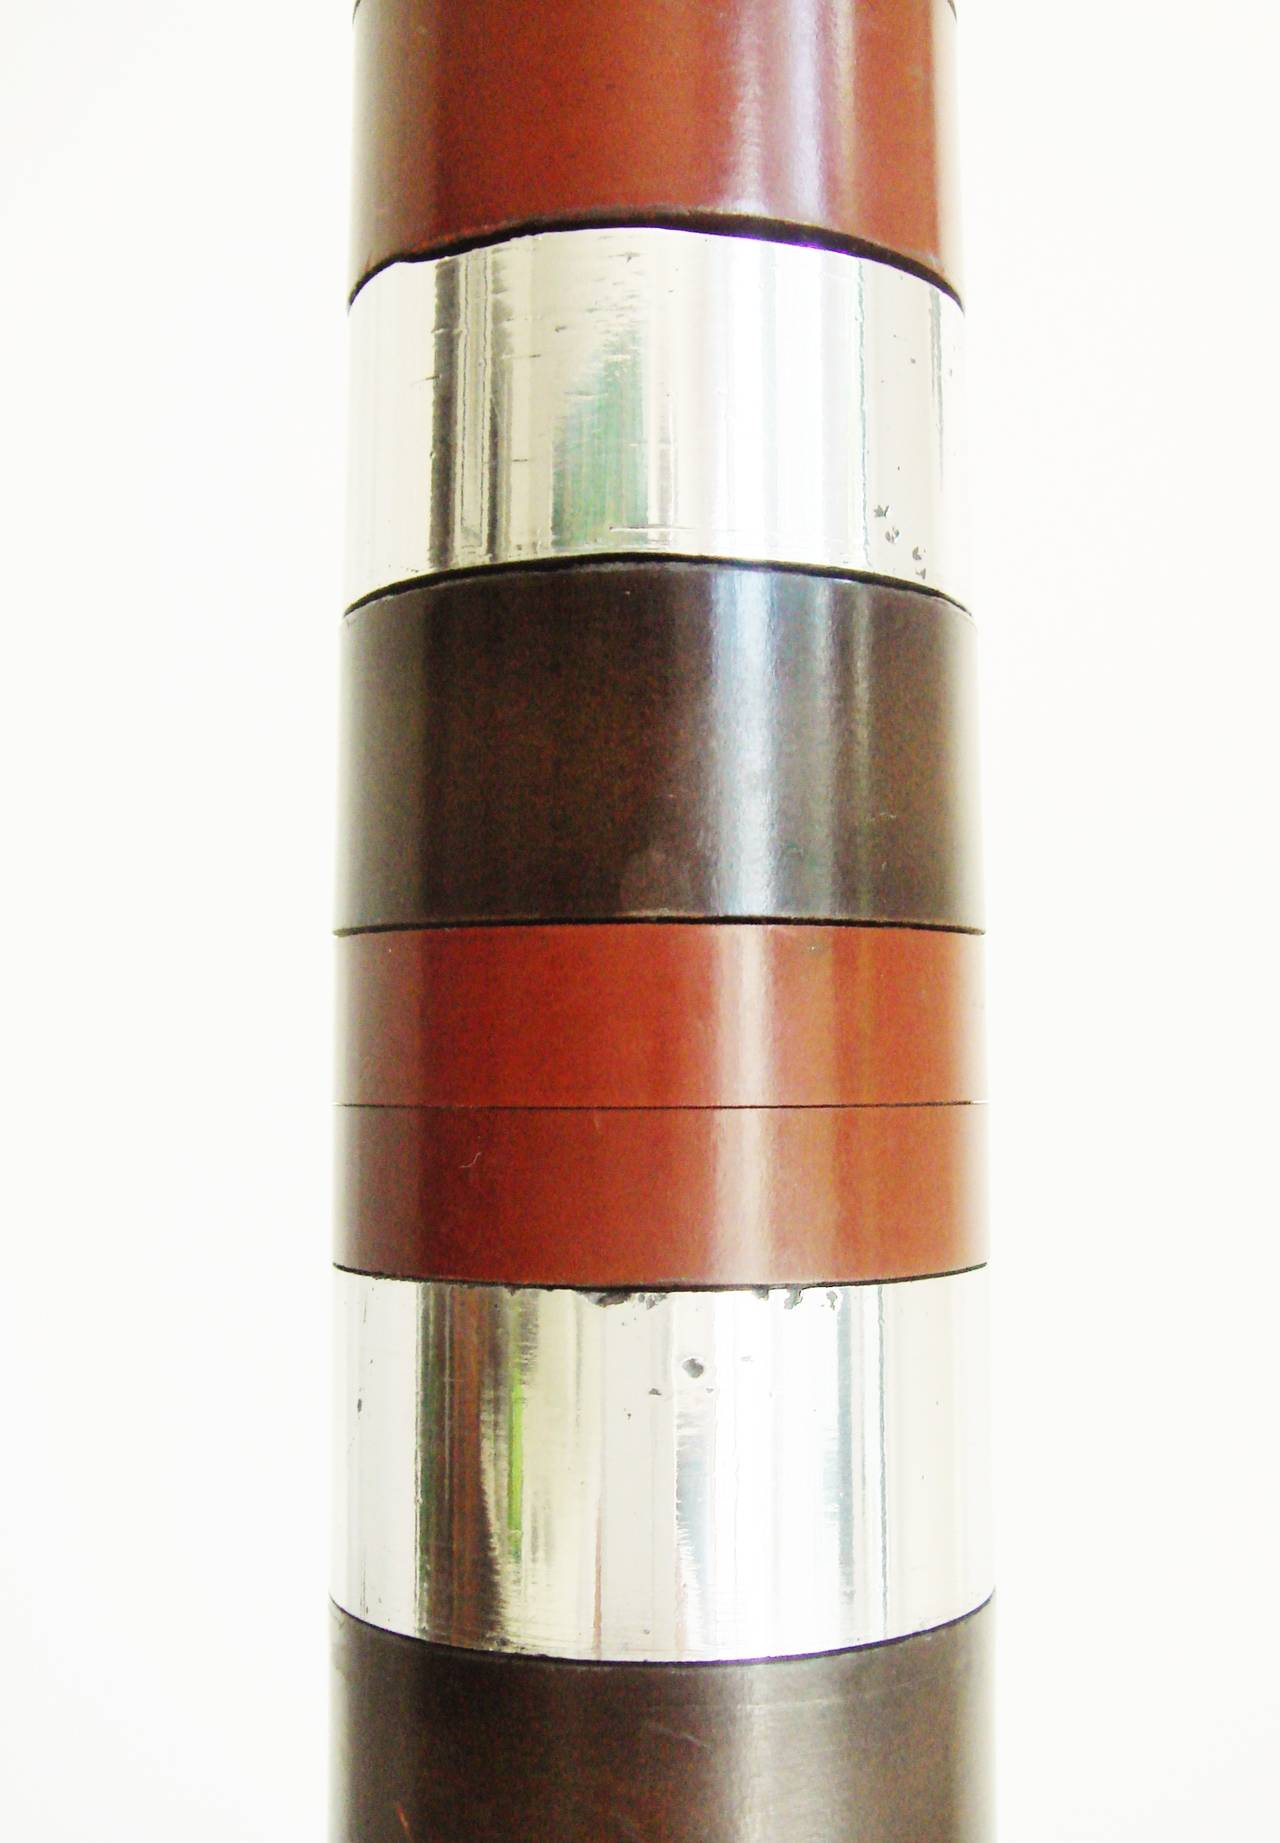 Ultimate American Bakelite, Chrome, Copper, Aluminium and Brass Trench Art Lamp In Good Condition For Sale In Port Hope, ON